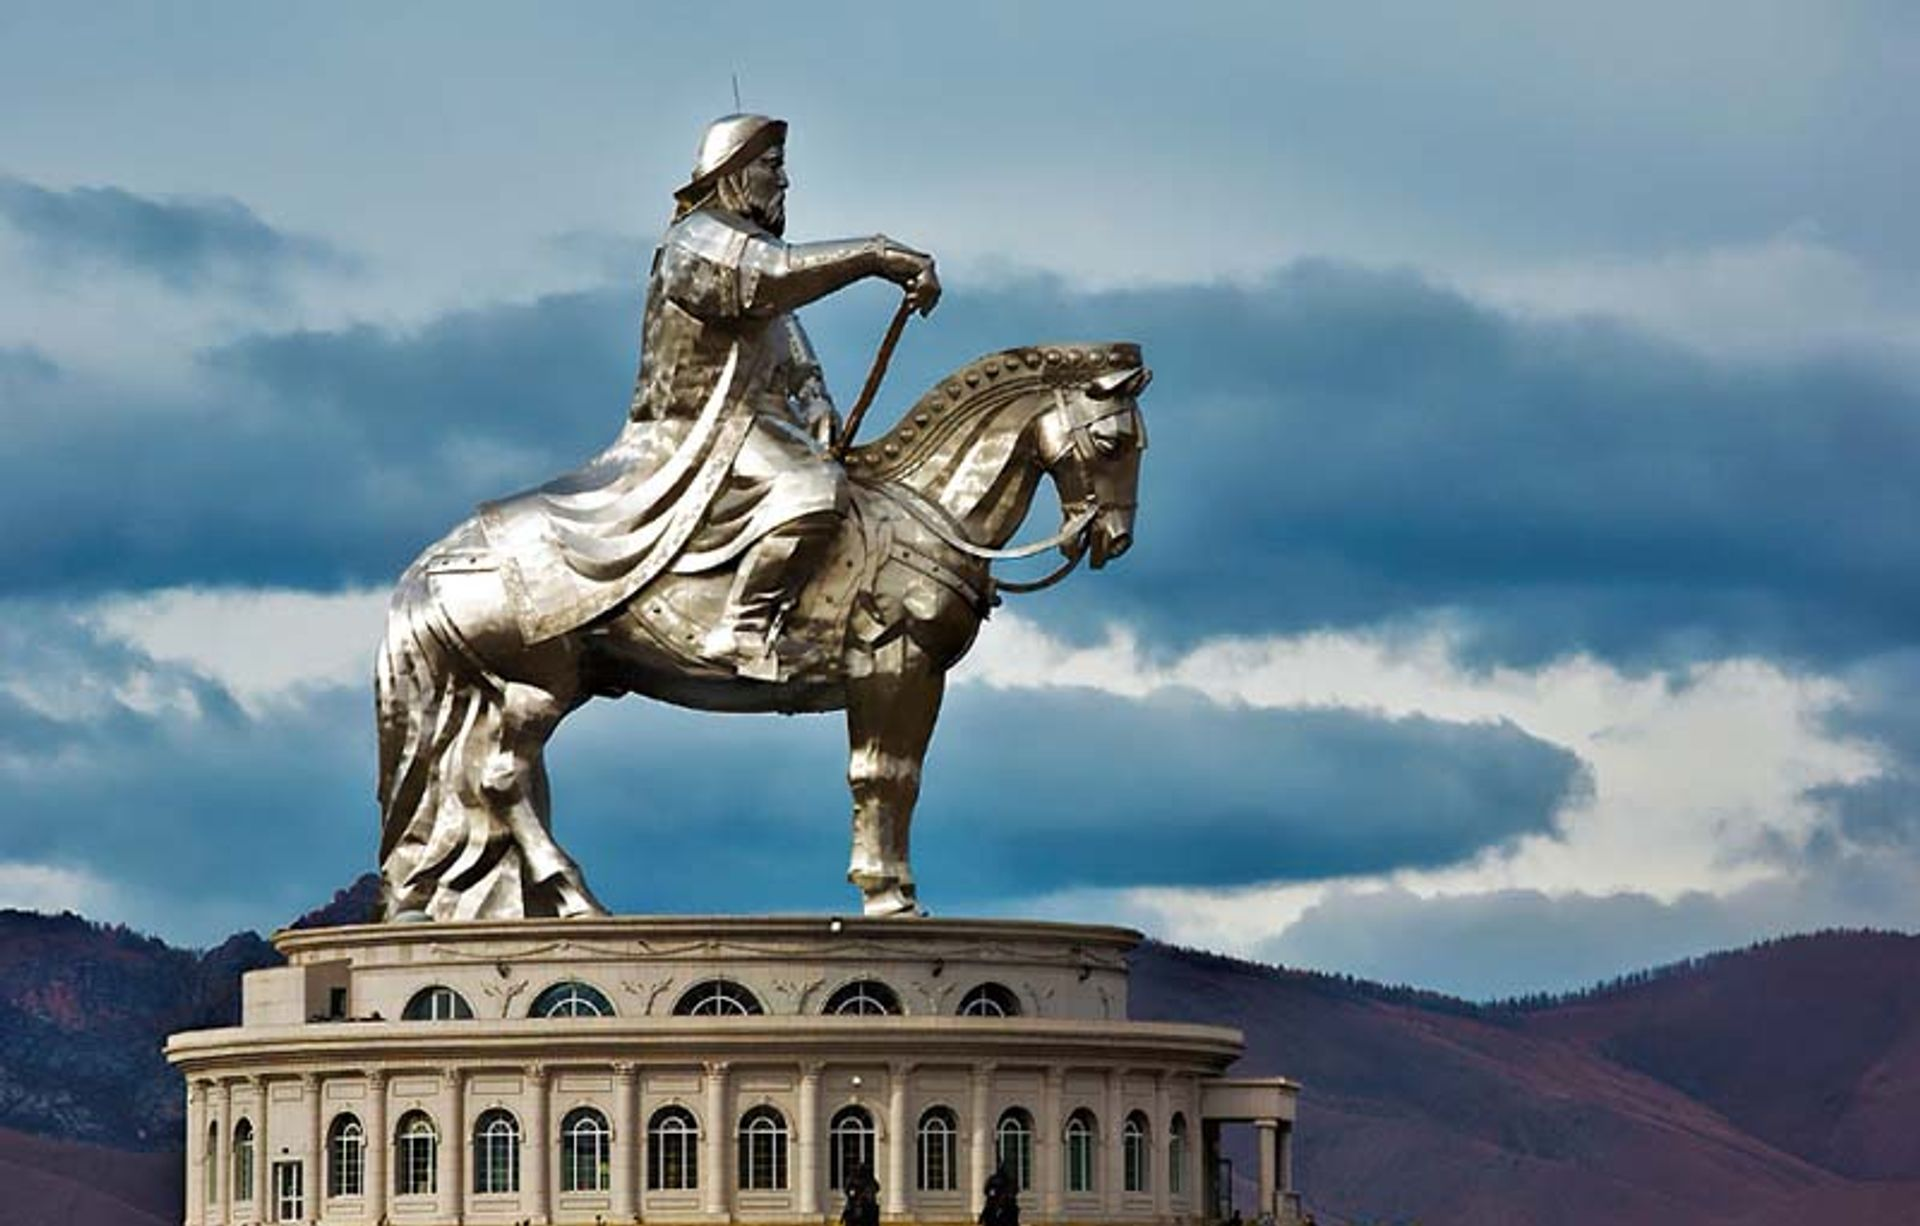 Genghis Khan's statue in Mongolia Flickr